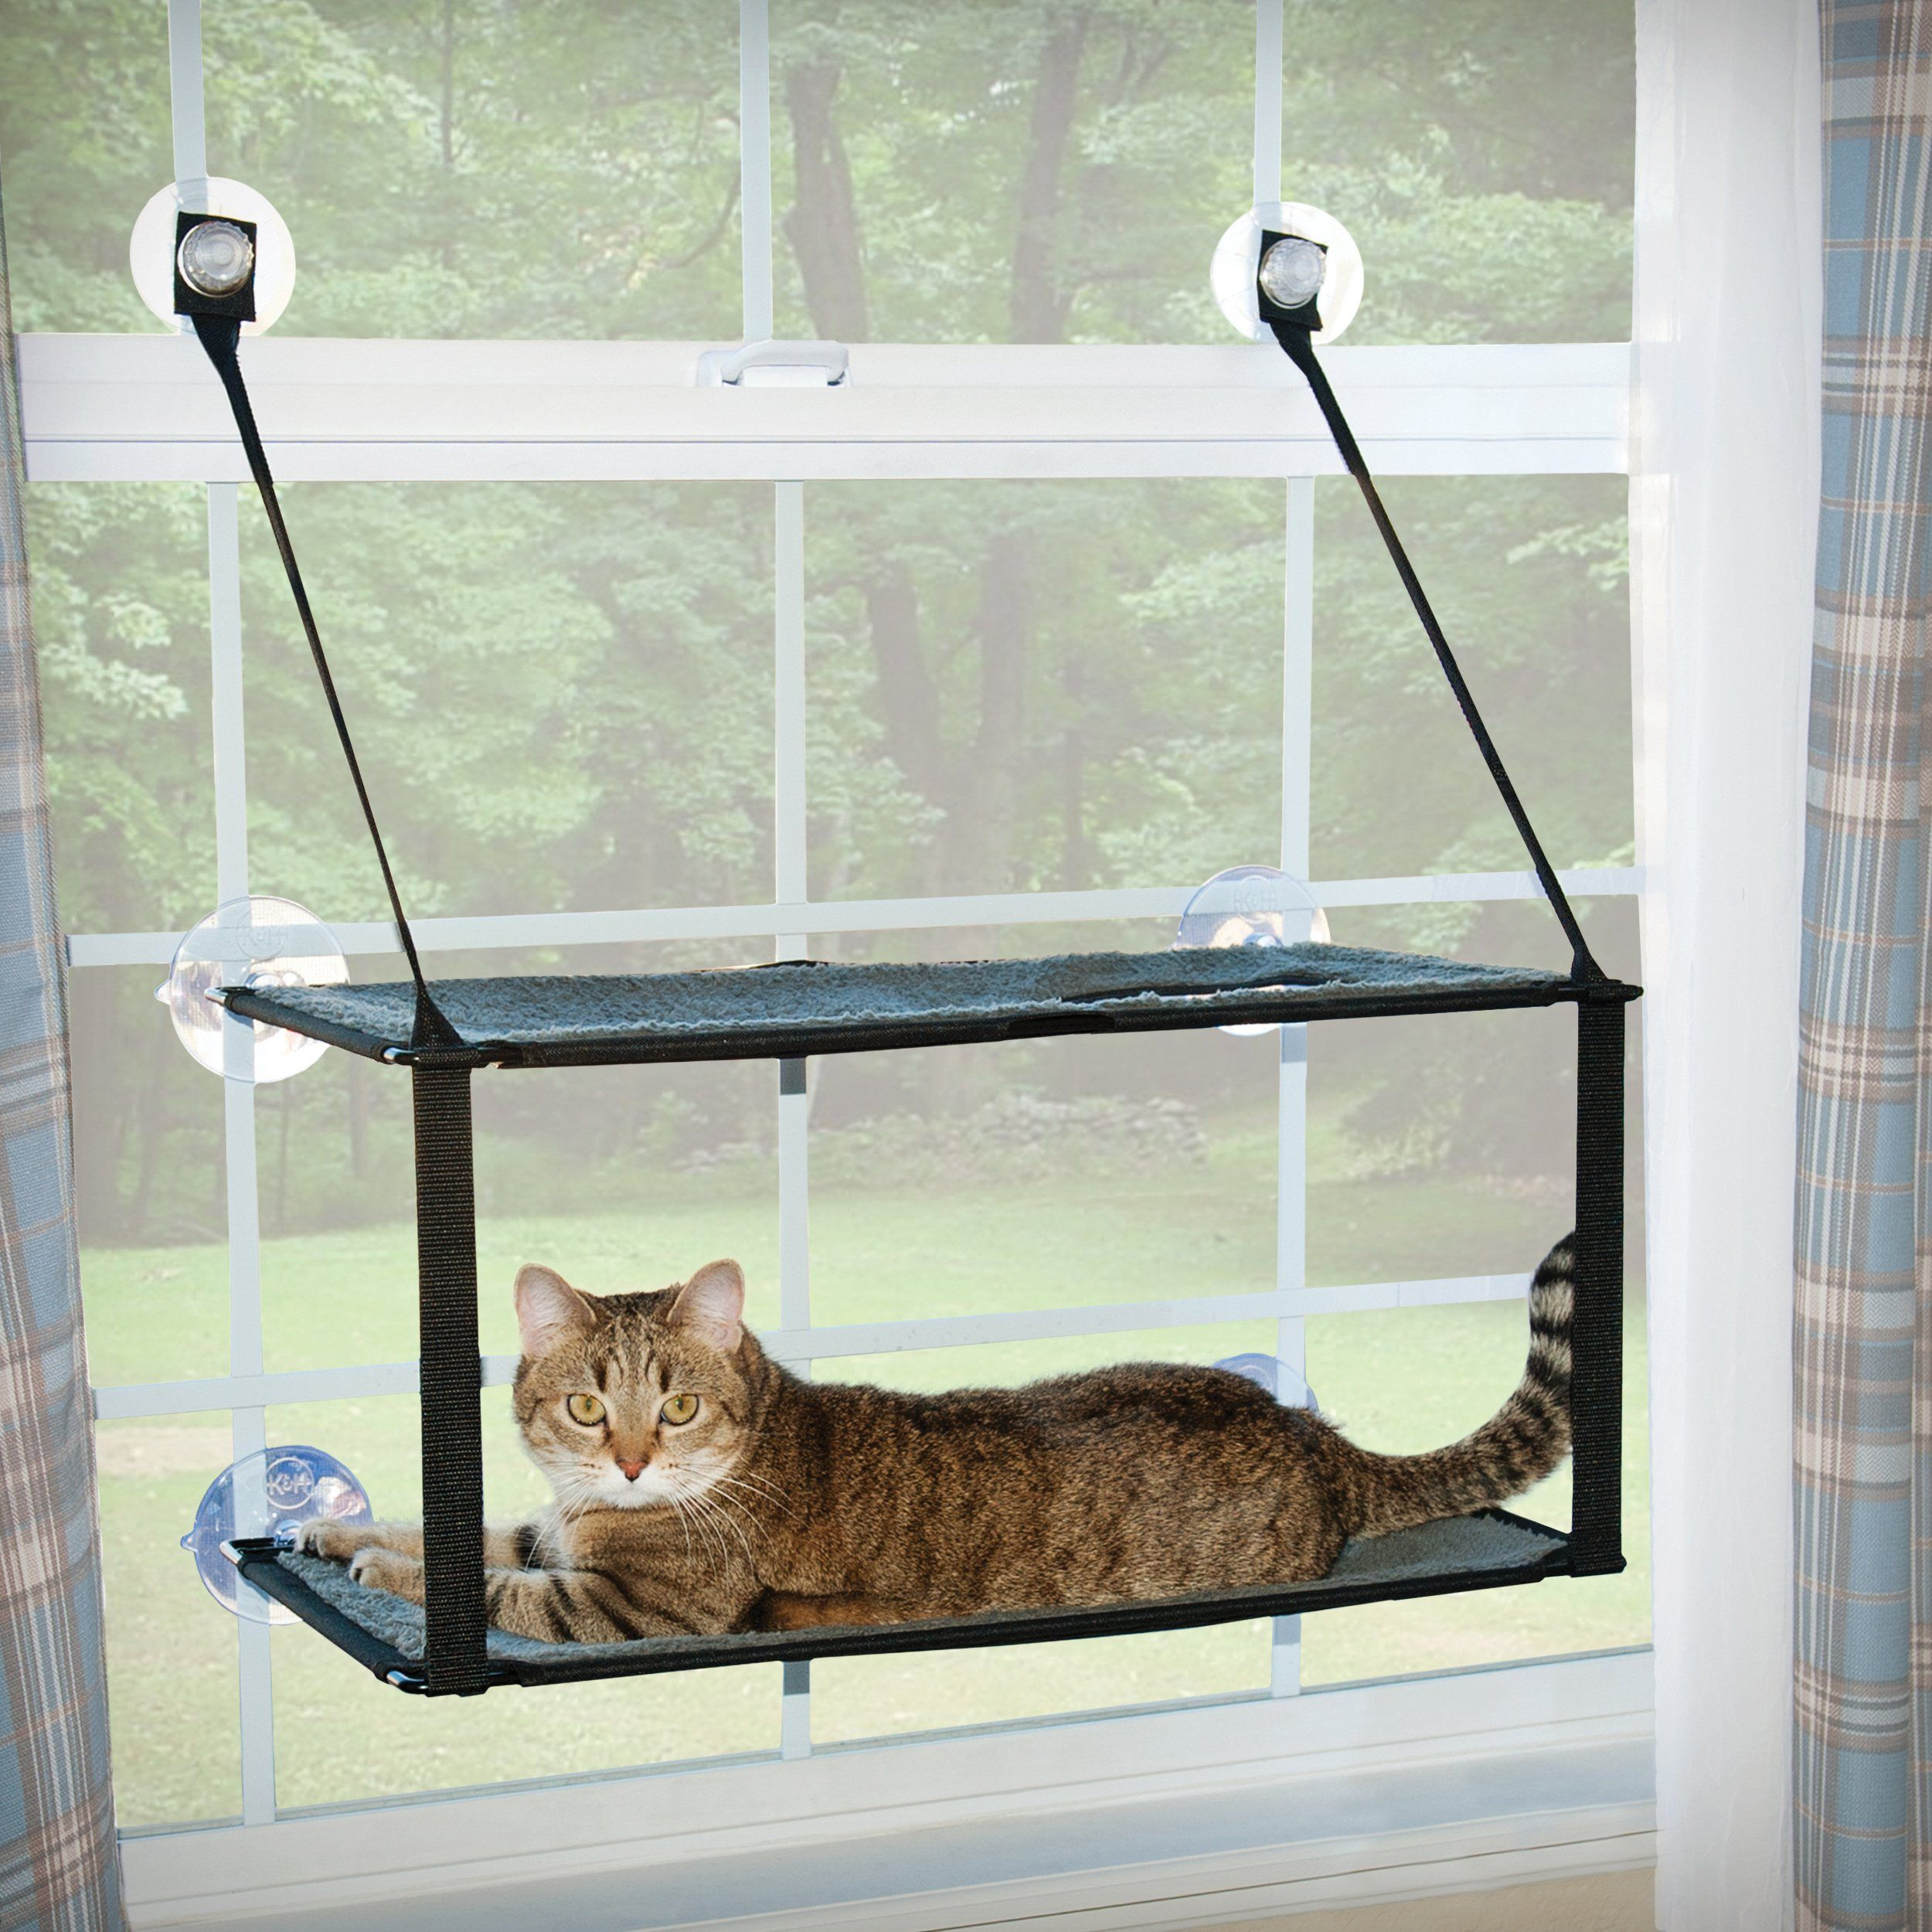 Window bed for cats  k catsideas  cats ideas  pinterest  cats kitty and pets